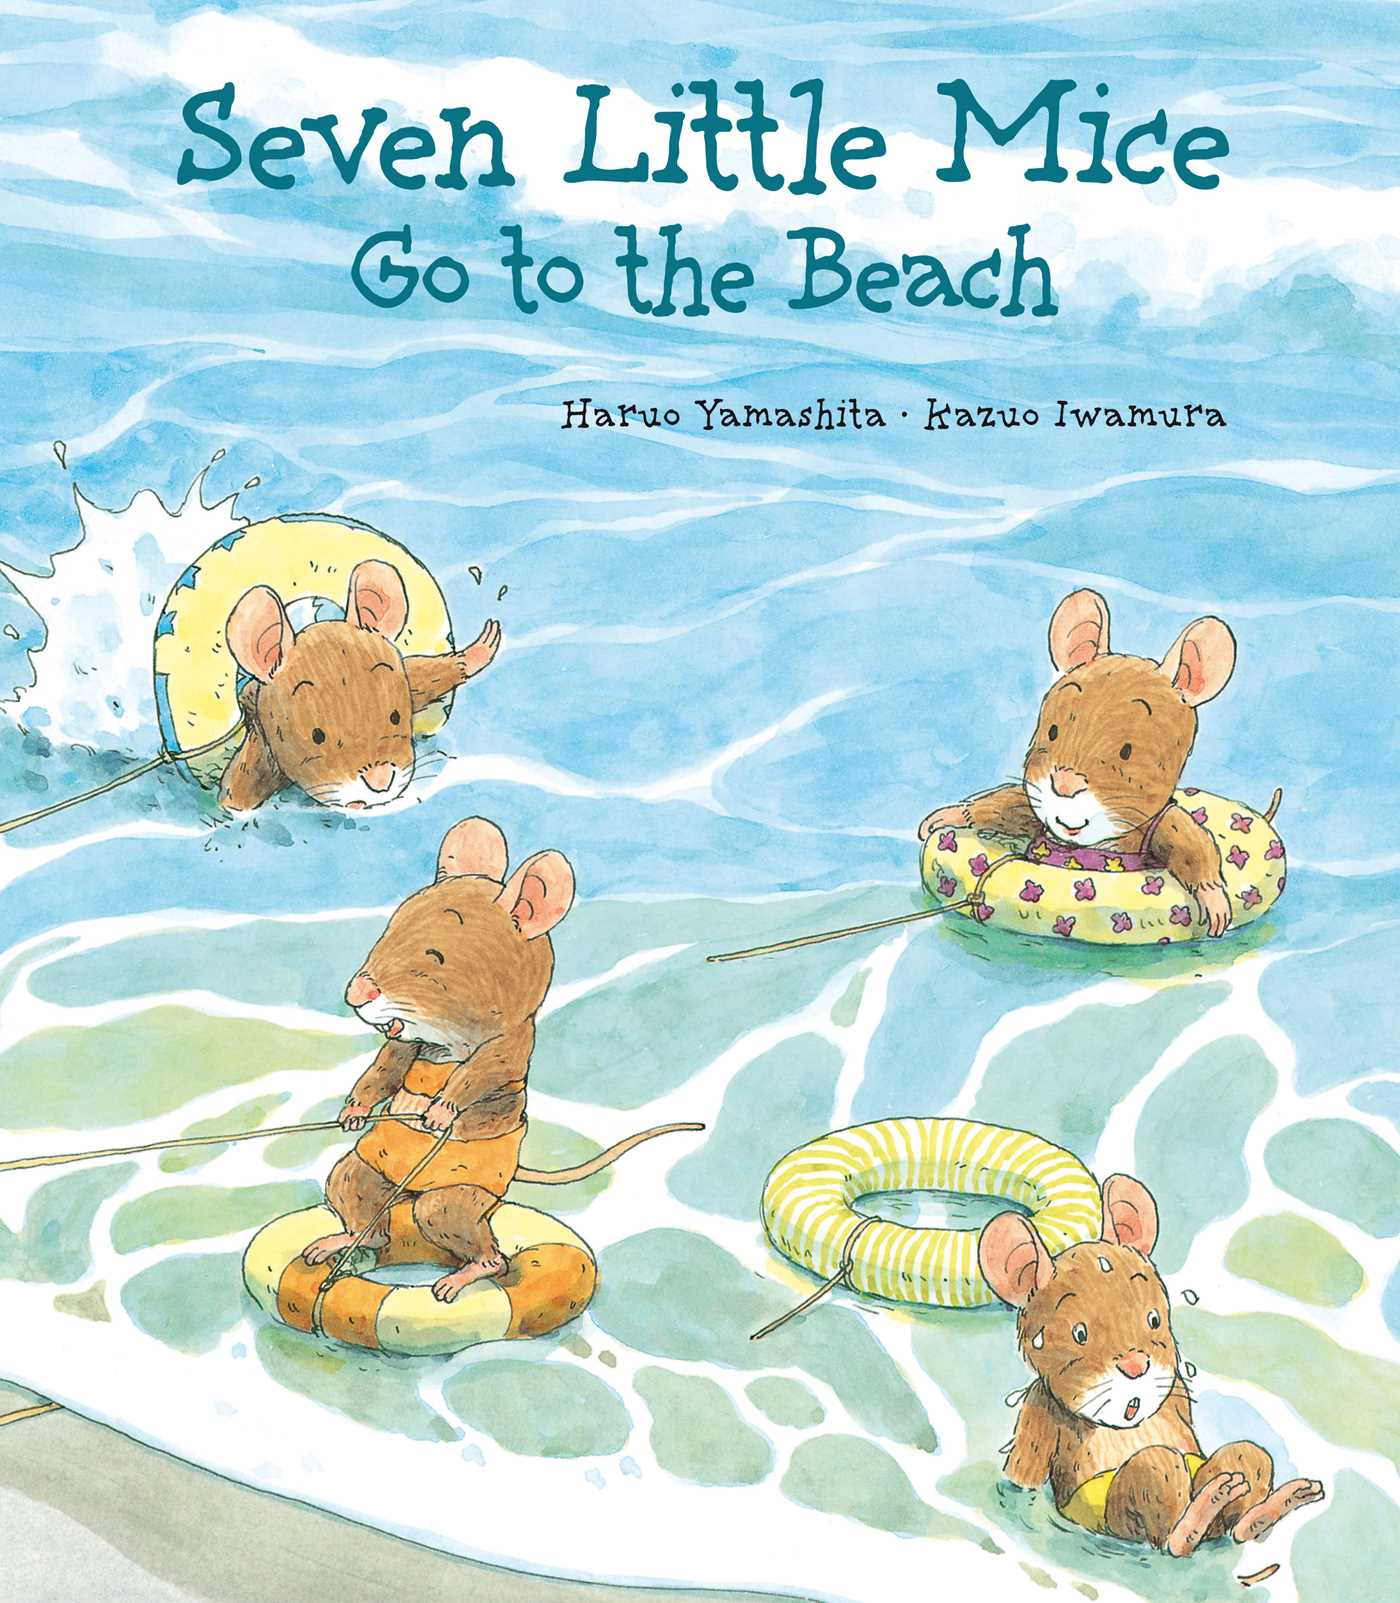 Book Cover Image (jpg): Seven Little Mice Go To The Beach